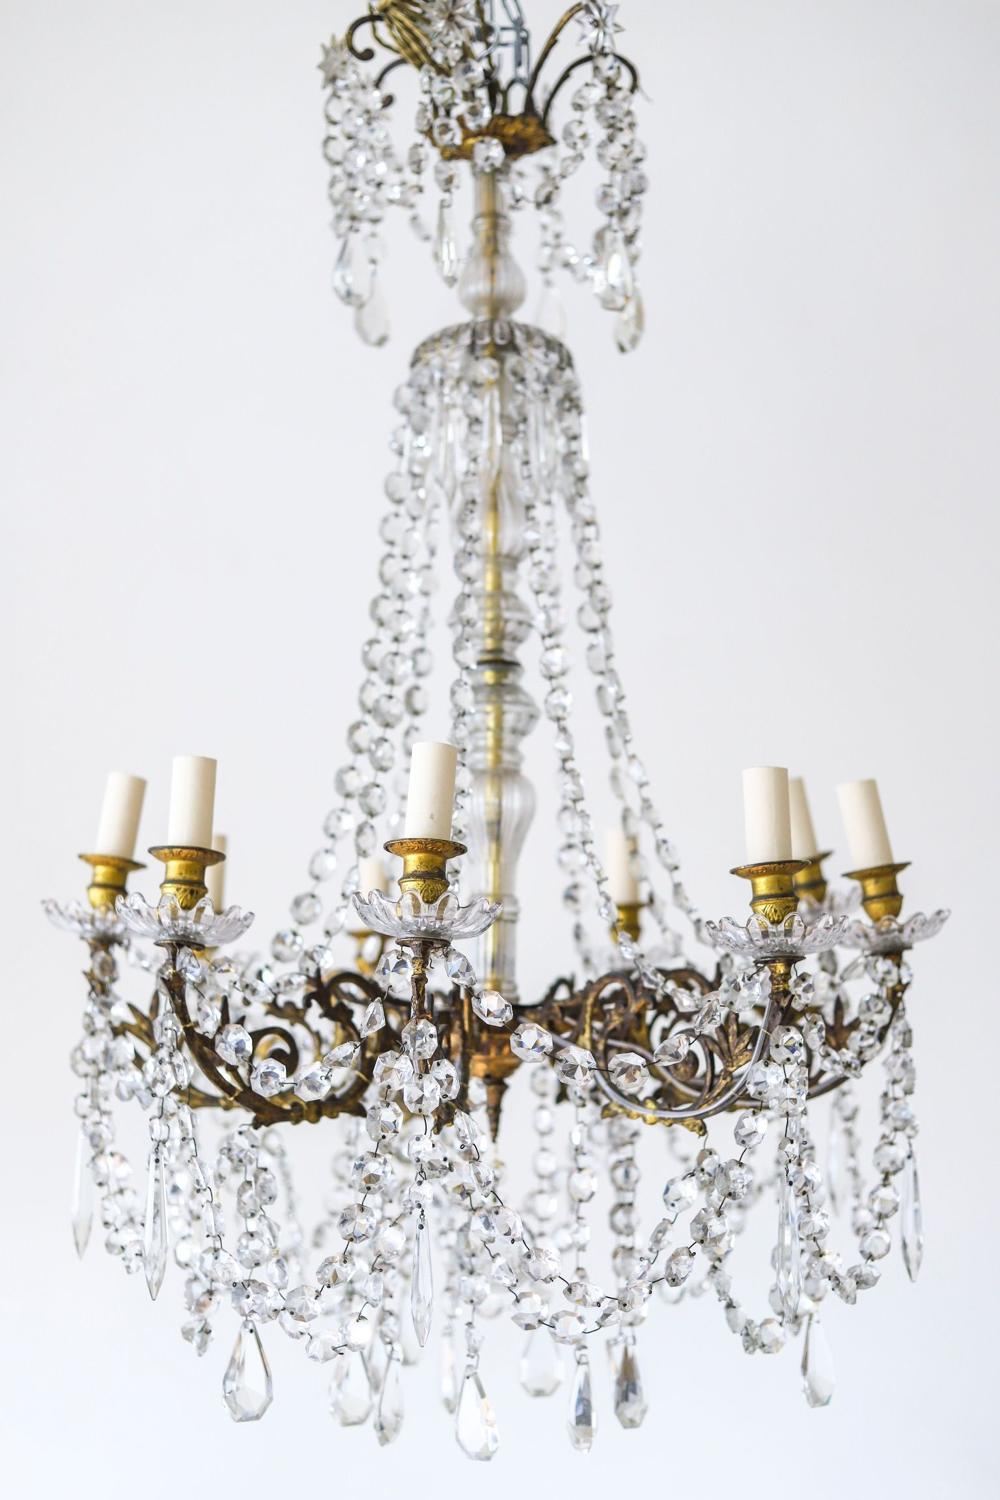 Large French antique crystal 8 branch chandelier c1870